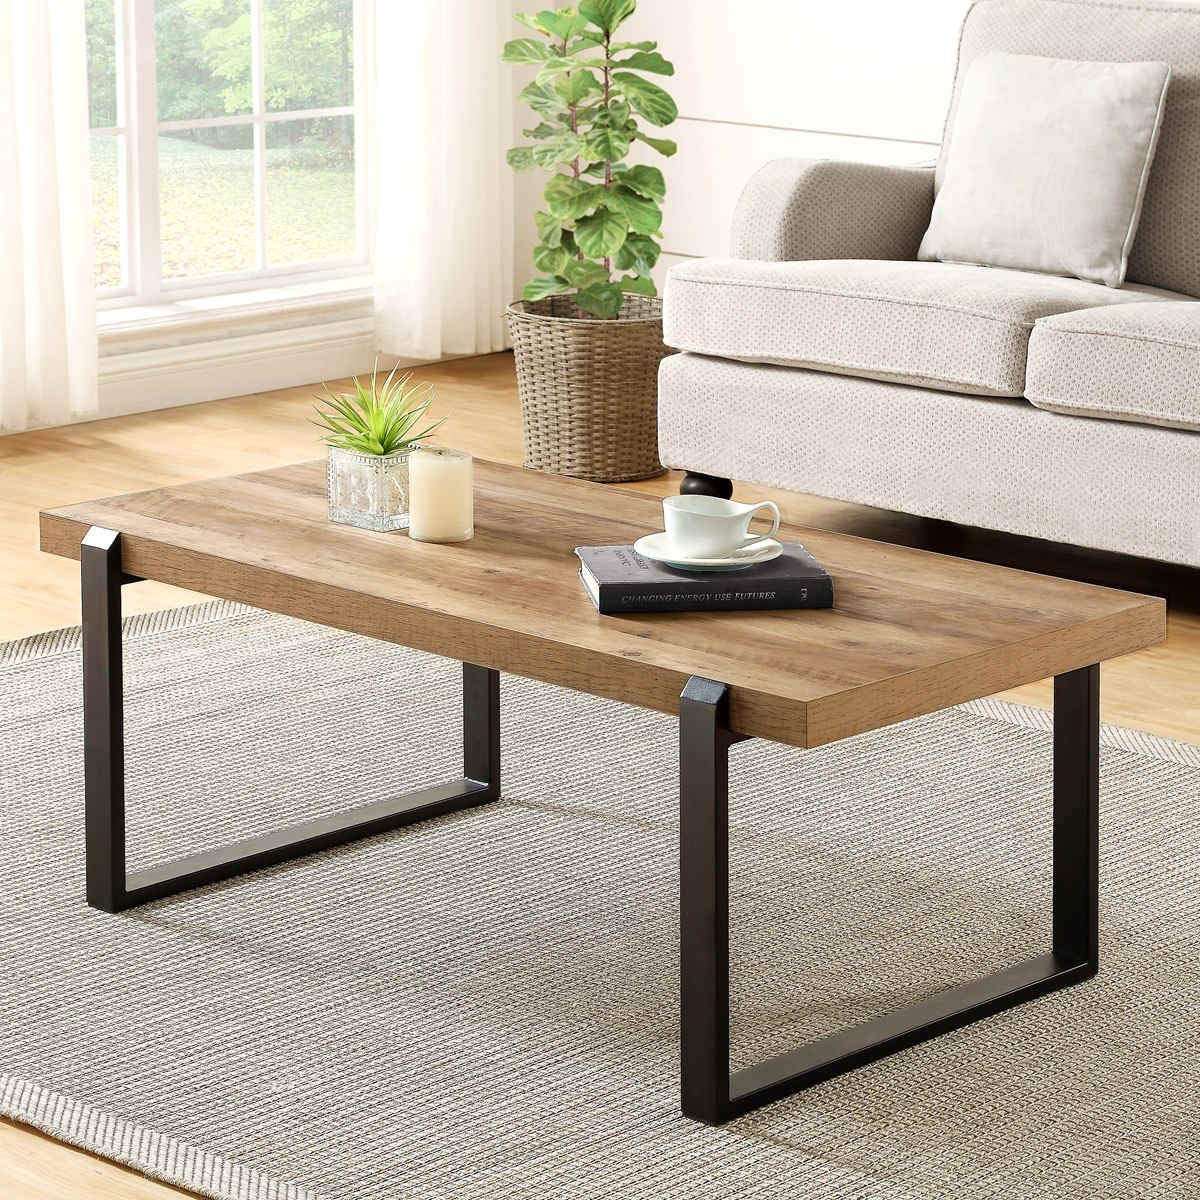 FOLUBAN Rustic Coffee Table,Wood and Metal Industrial Cocktail Table for Living Room, Oak